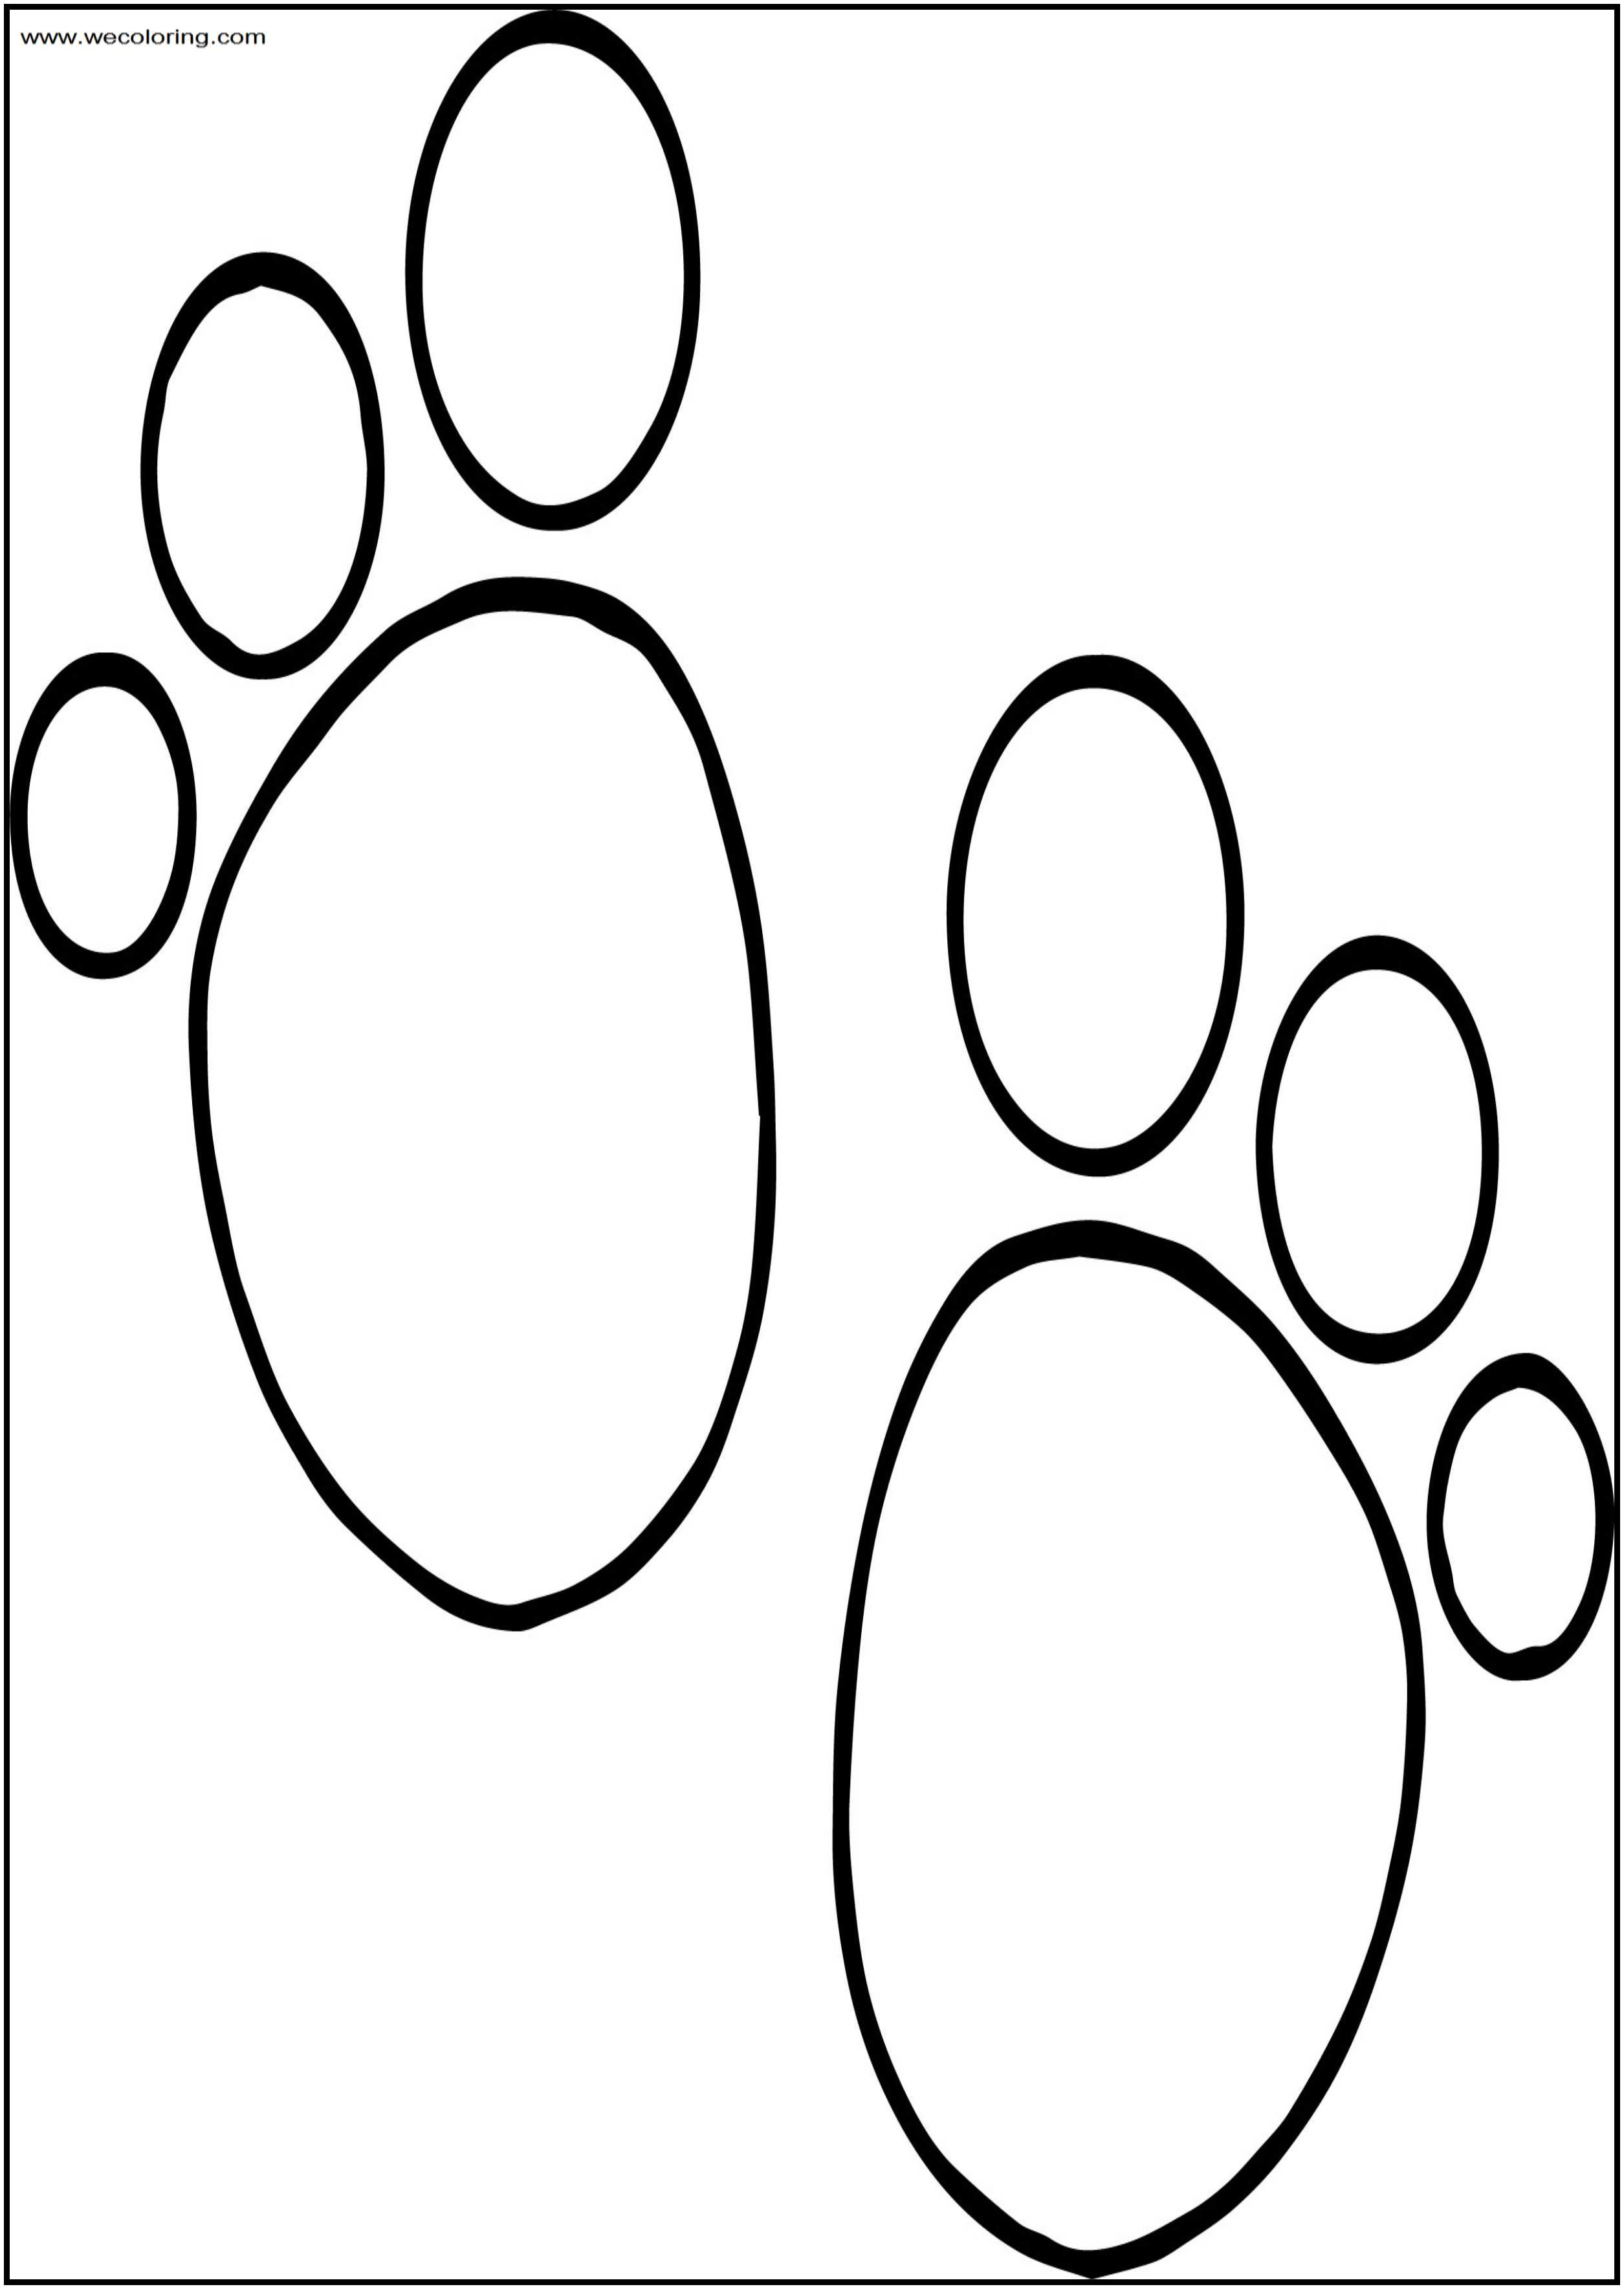 Blues Clues Foot Print Free A4 Printable Coloring Page